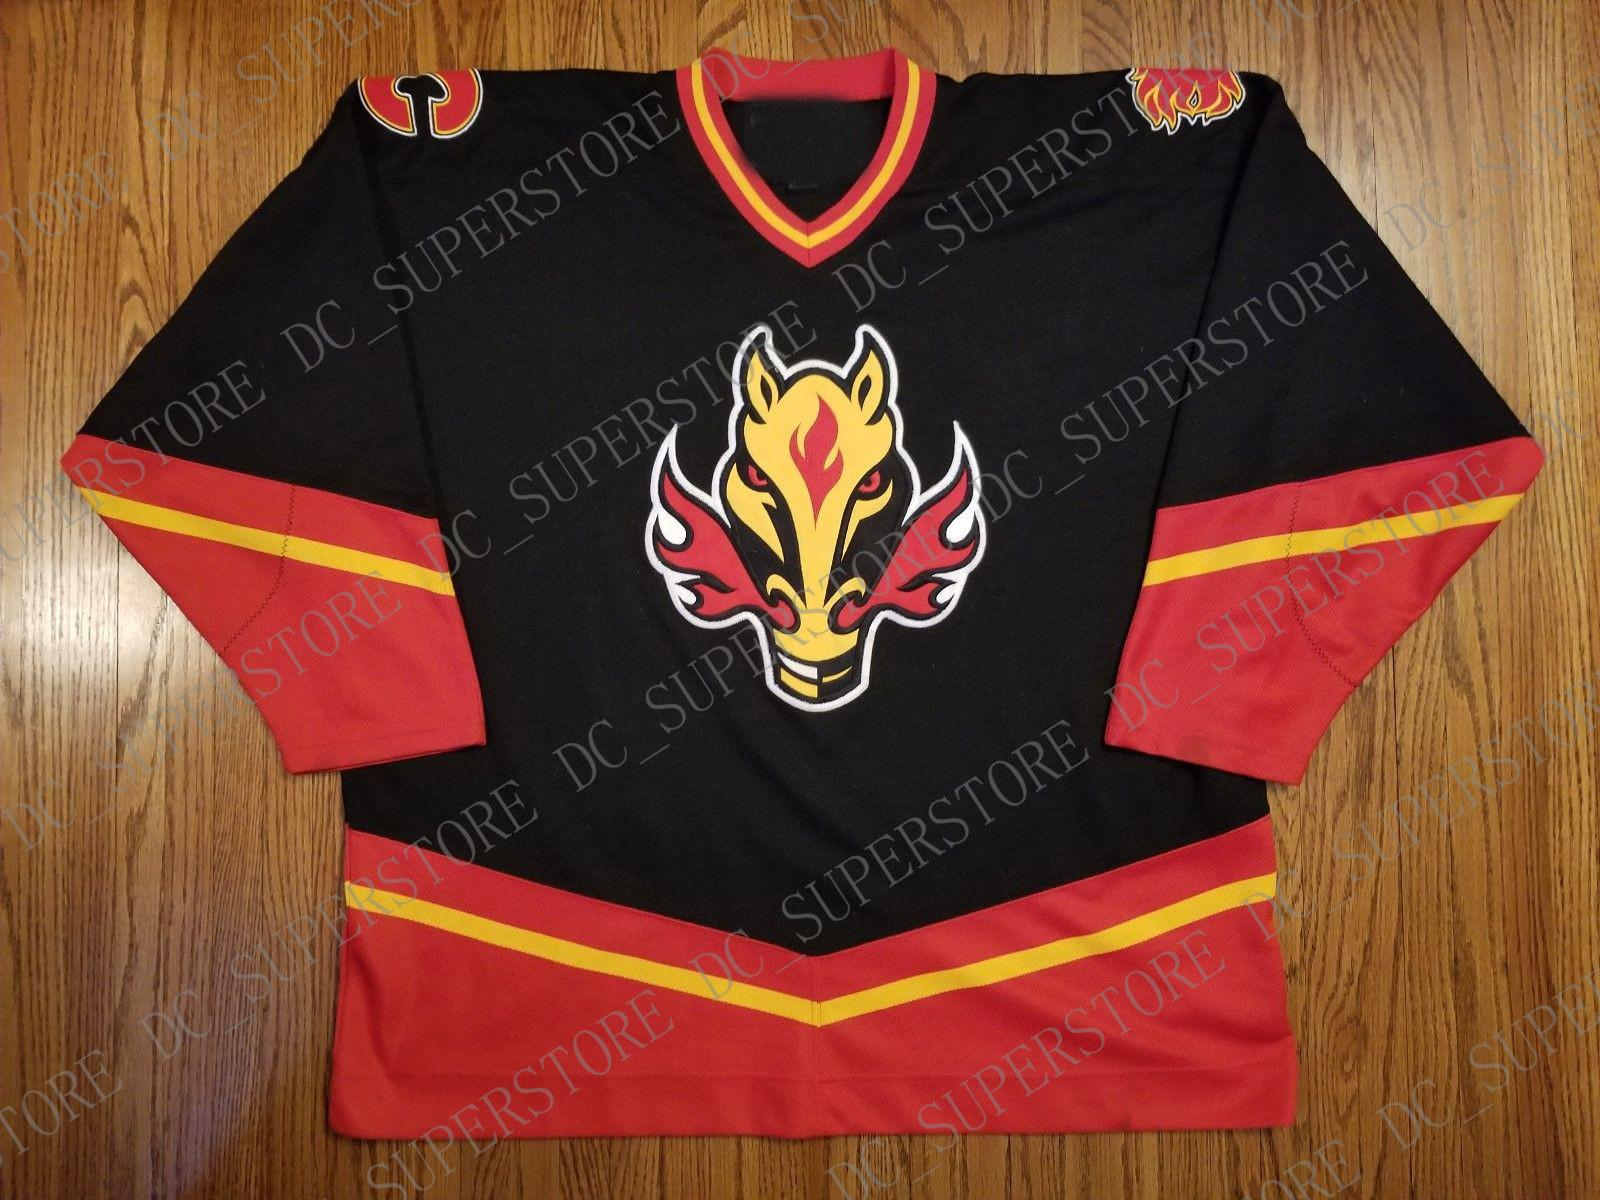 66c2e77f926 2019 Cheap Custom Calgary Flames Vintage Pro Player Jersey Third Horse Head  Stitched Retro Hockey Jersey Customize Any Name Number XS 5XL From  Dc_superstore ...